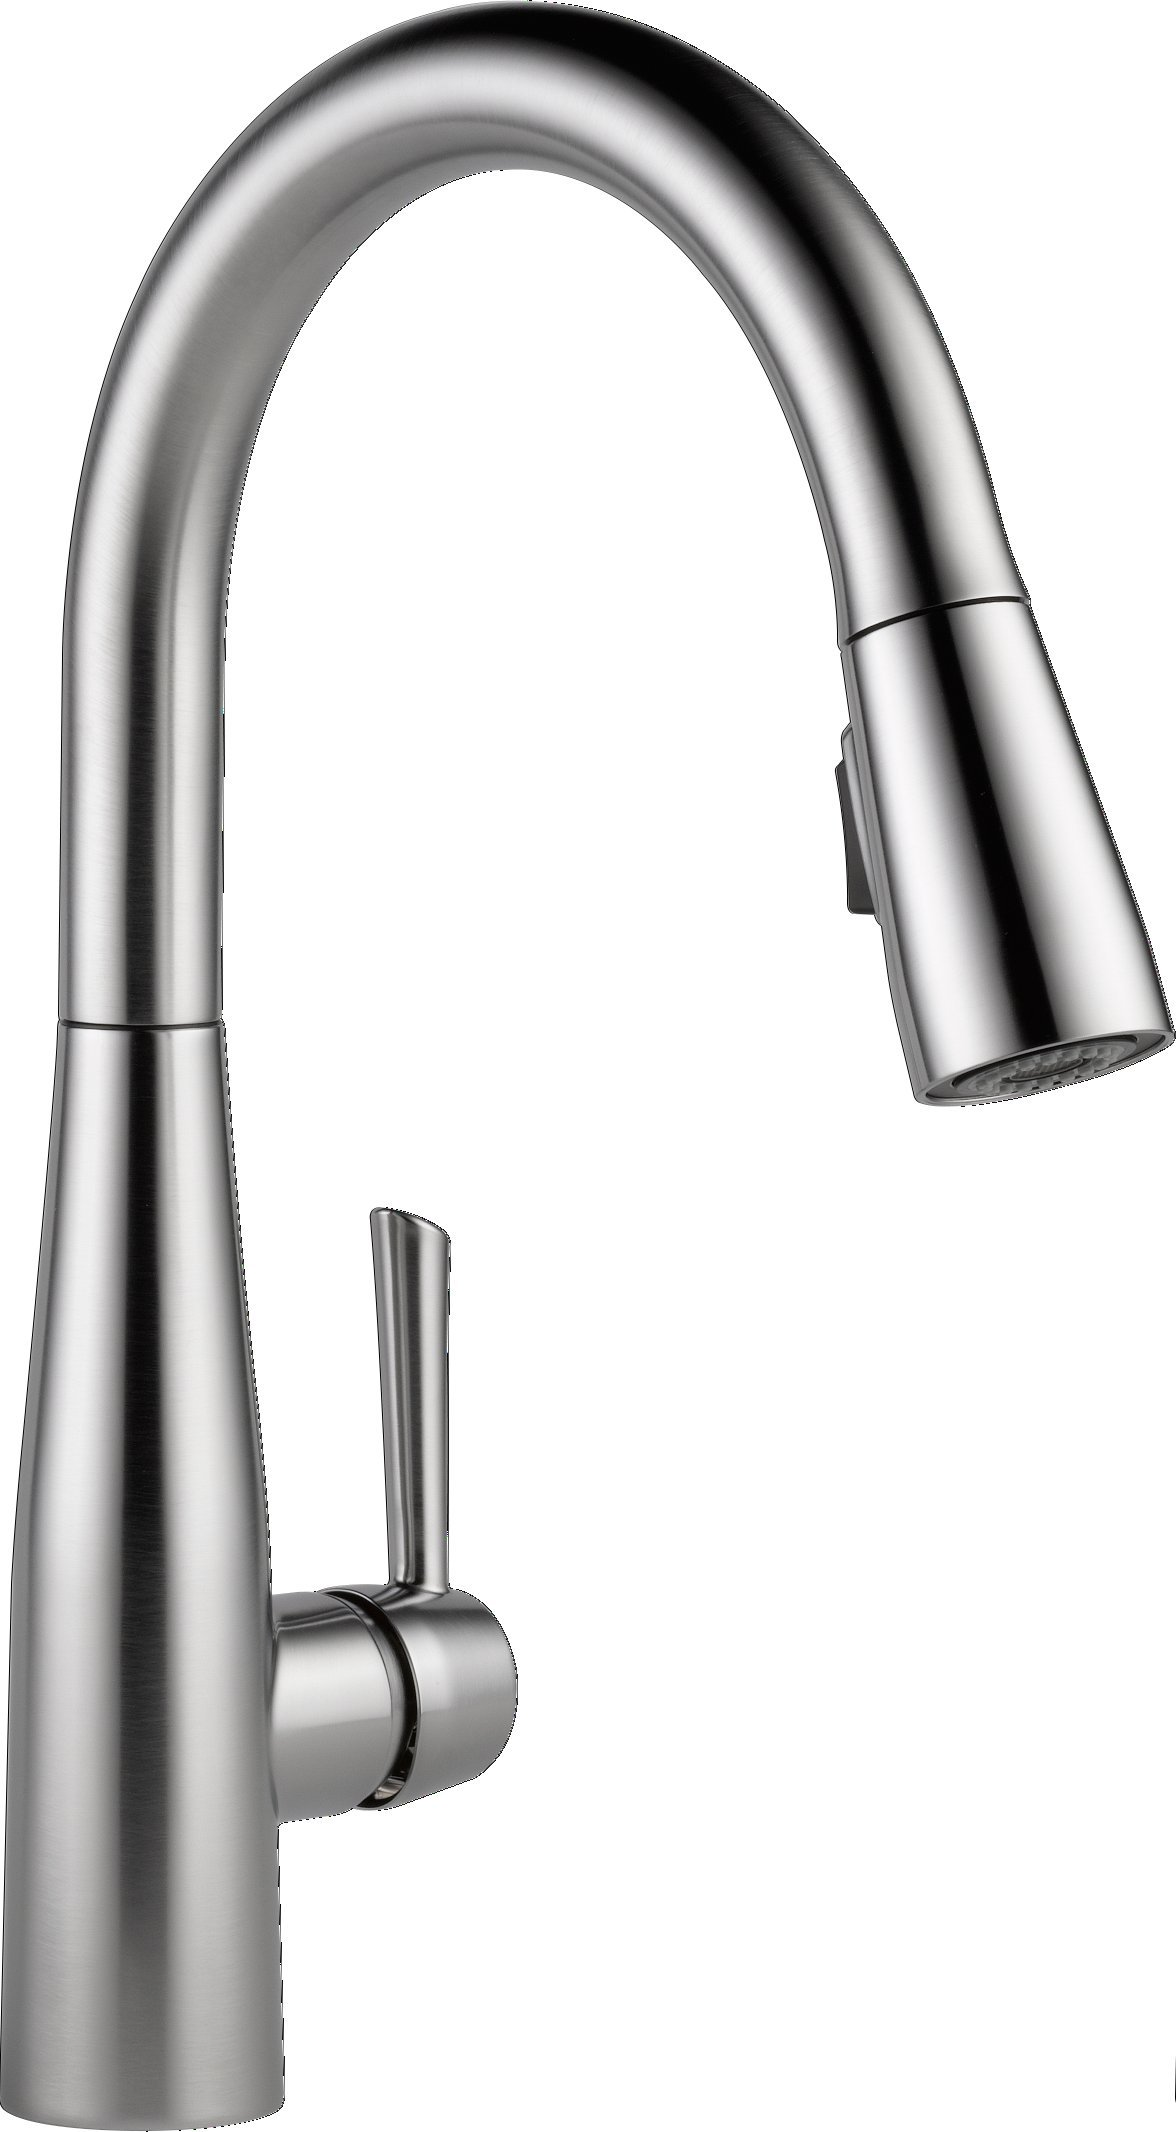 Delta Faucet 9113-AR-DST Essa Single Handle Pull-Down Kitchen Faucet with Magnetic Docking, Arctic Stainless